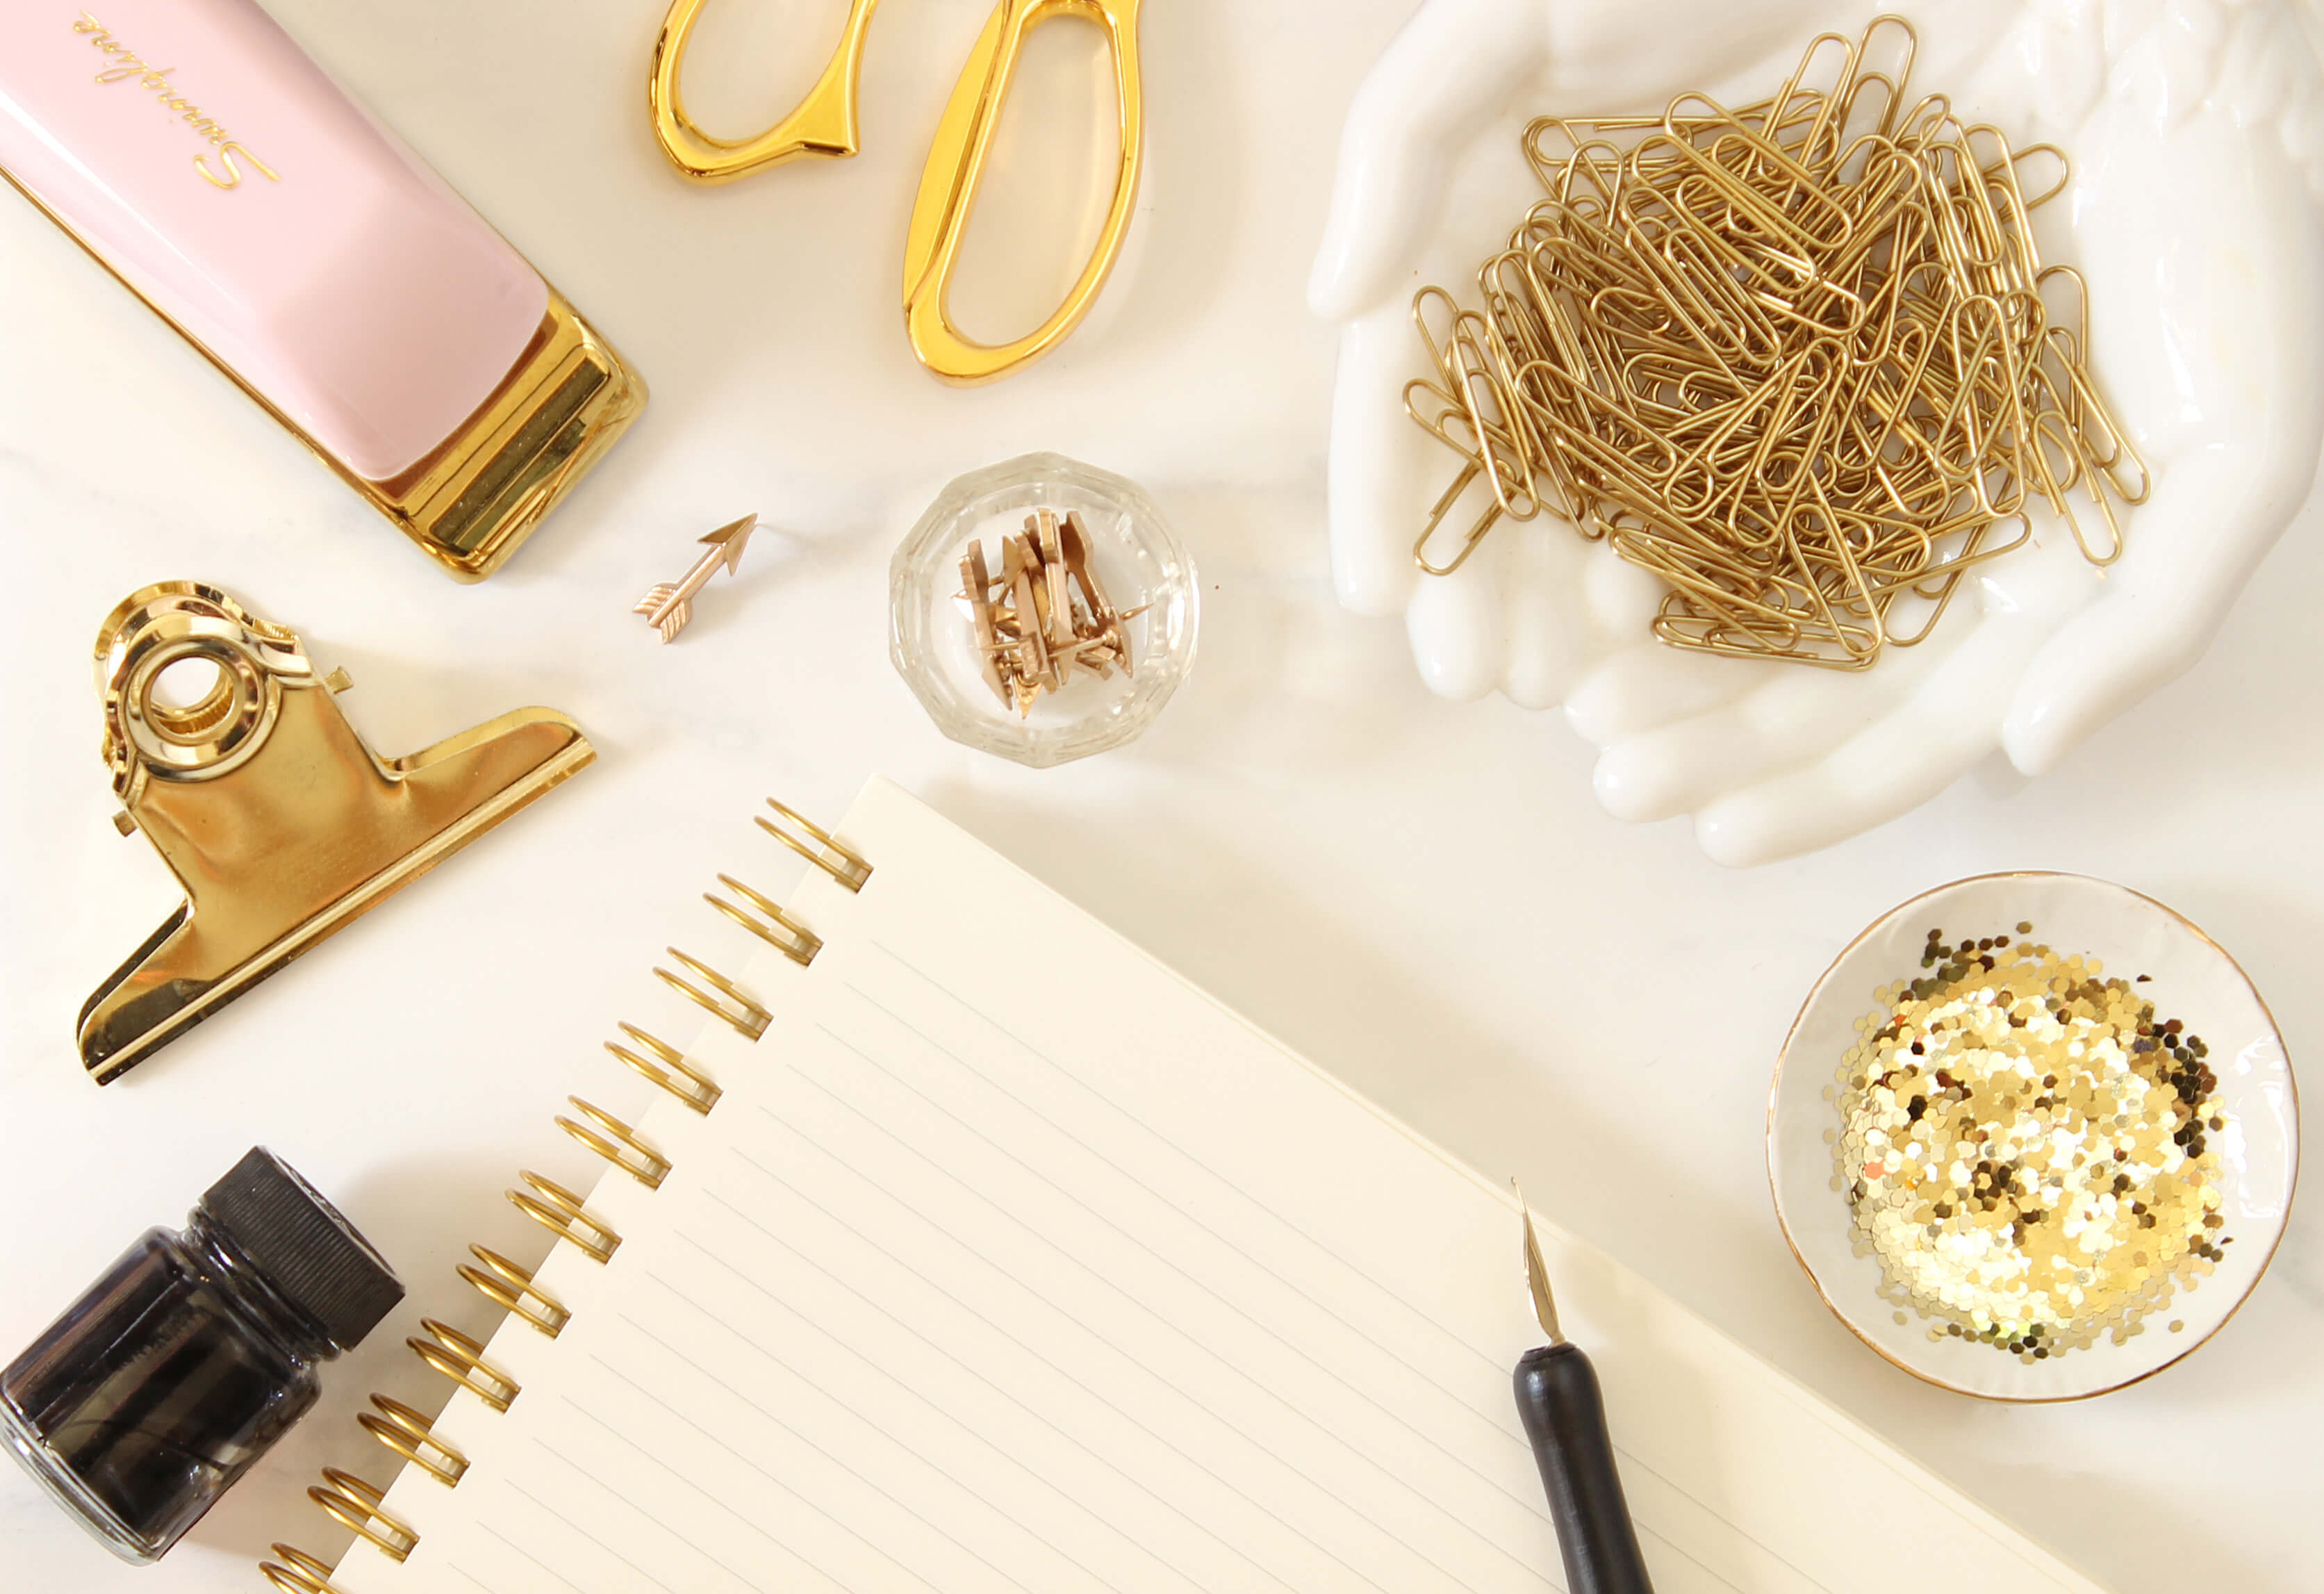 Super Cute School Supplies You Didn't Know You Needed